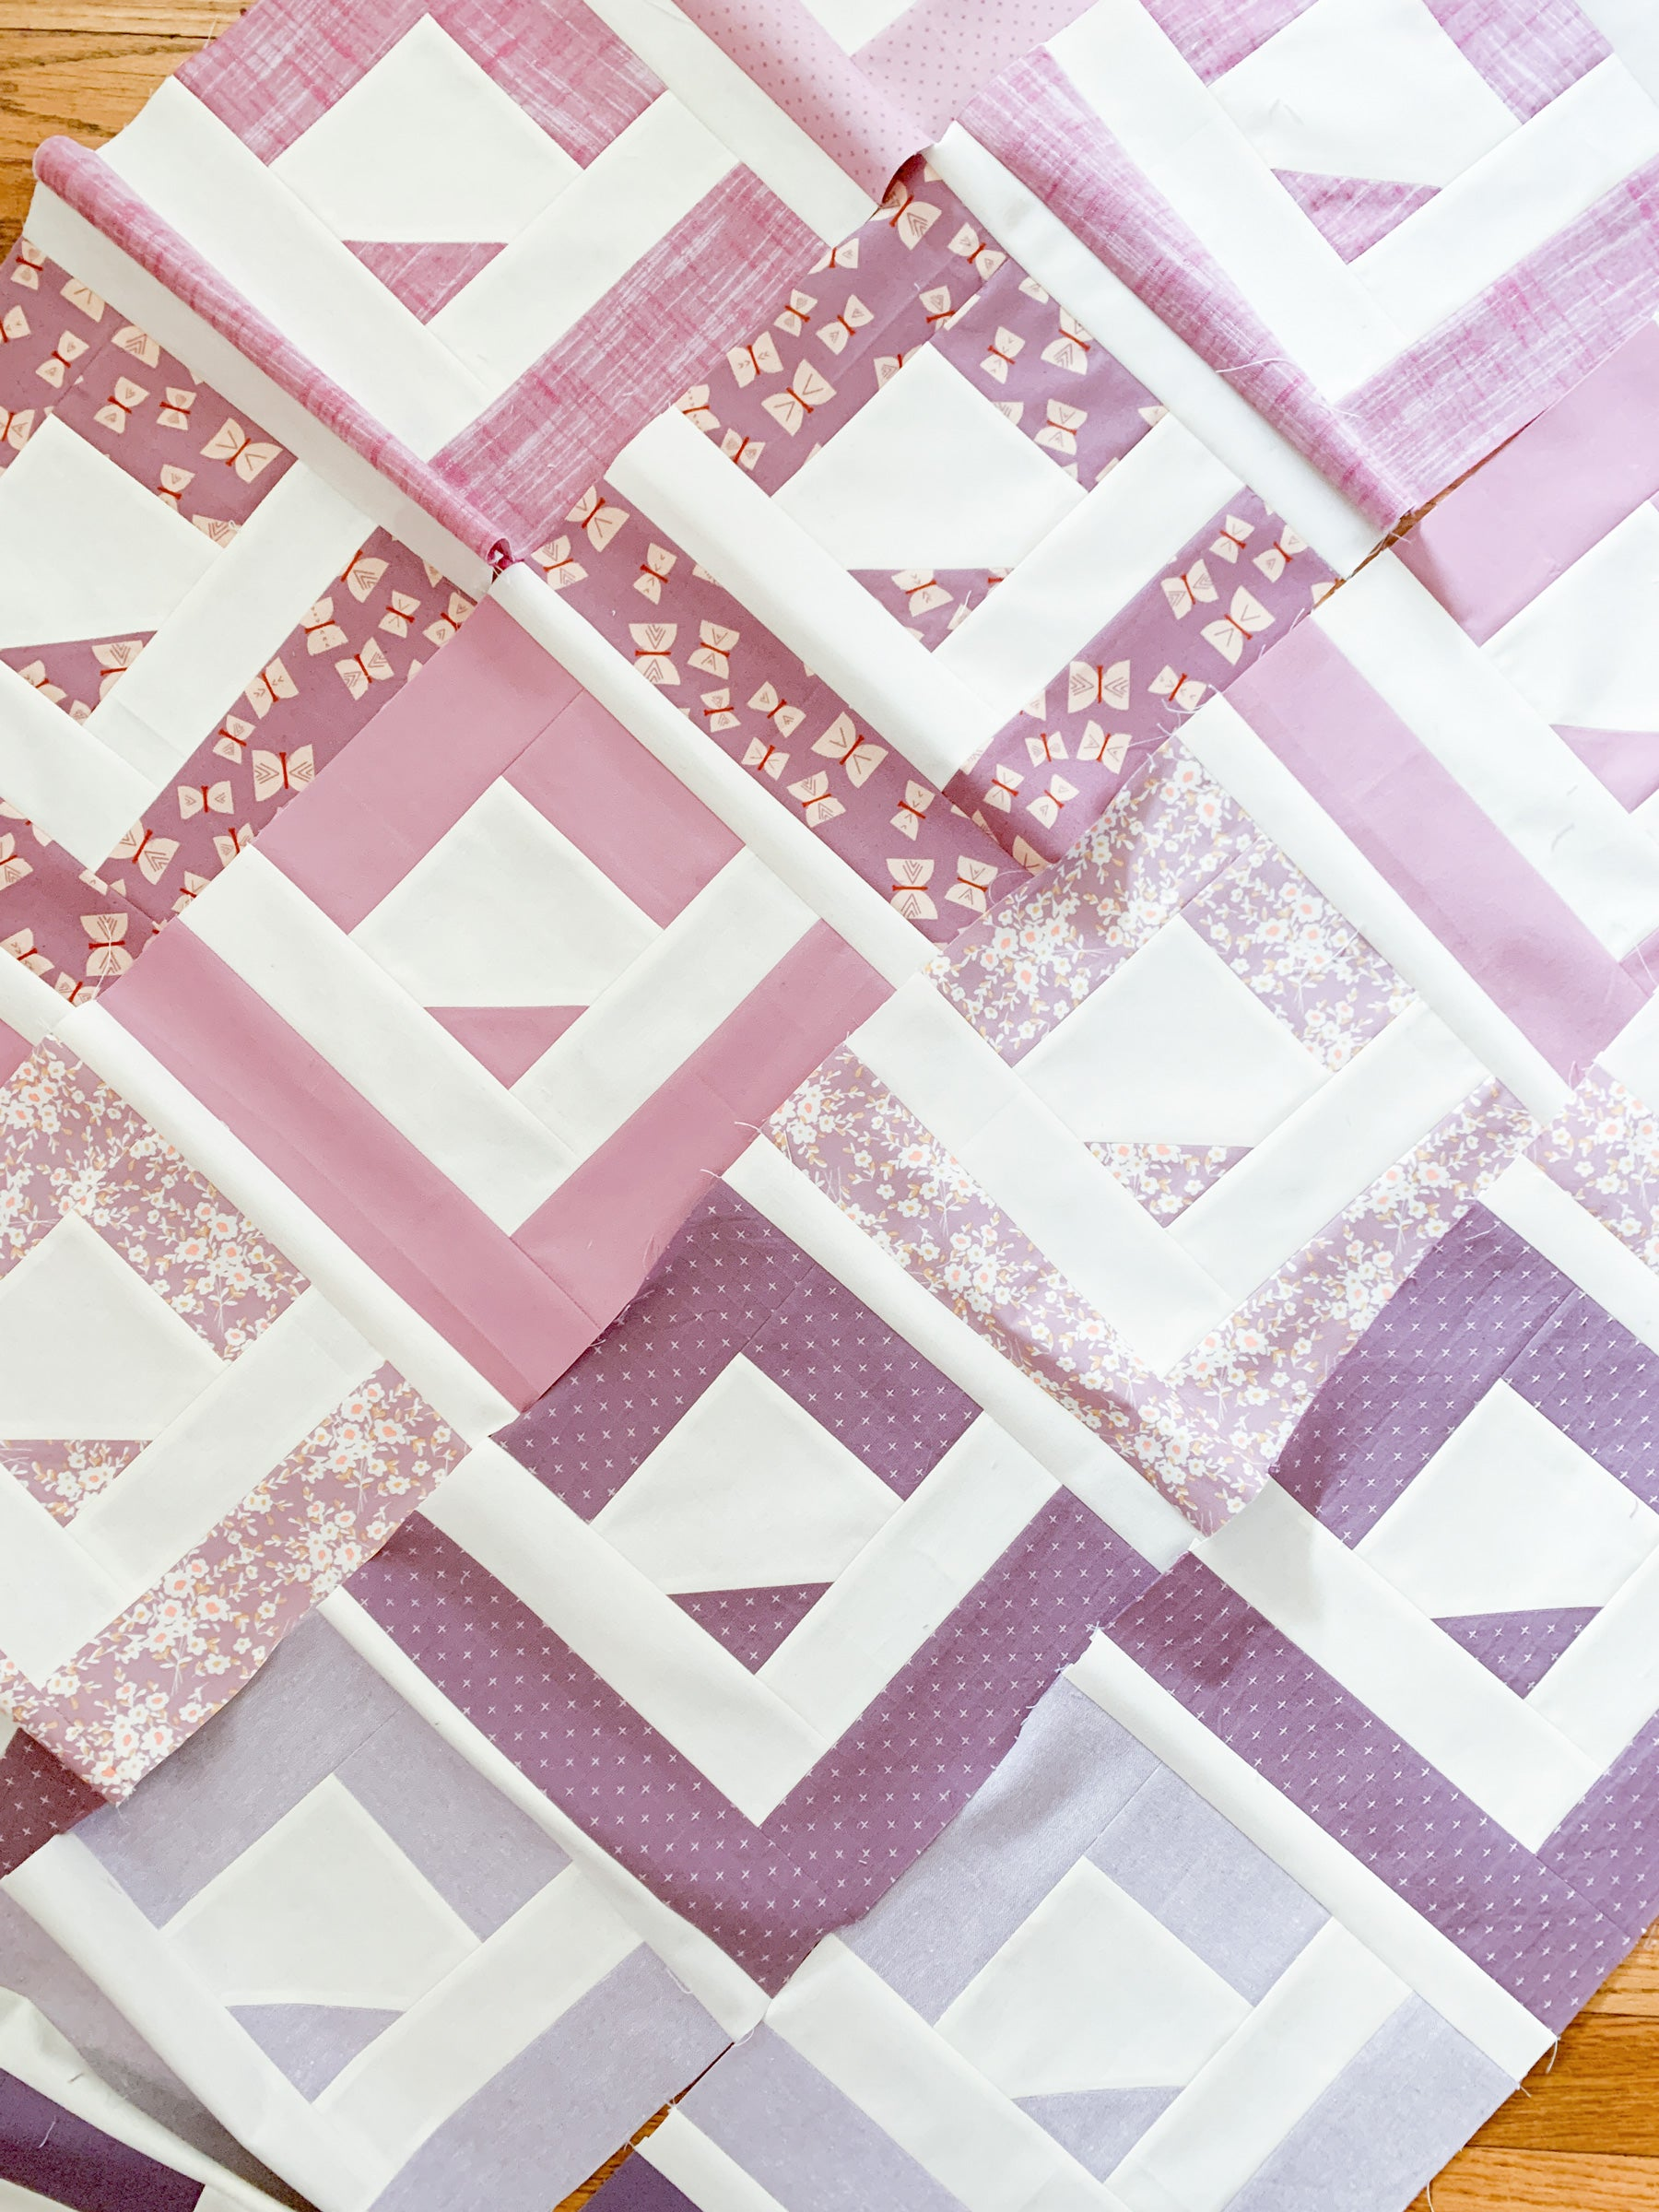 Quilt Rows - Purple Cabin Valley quilt by Cotton and Joy